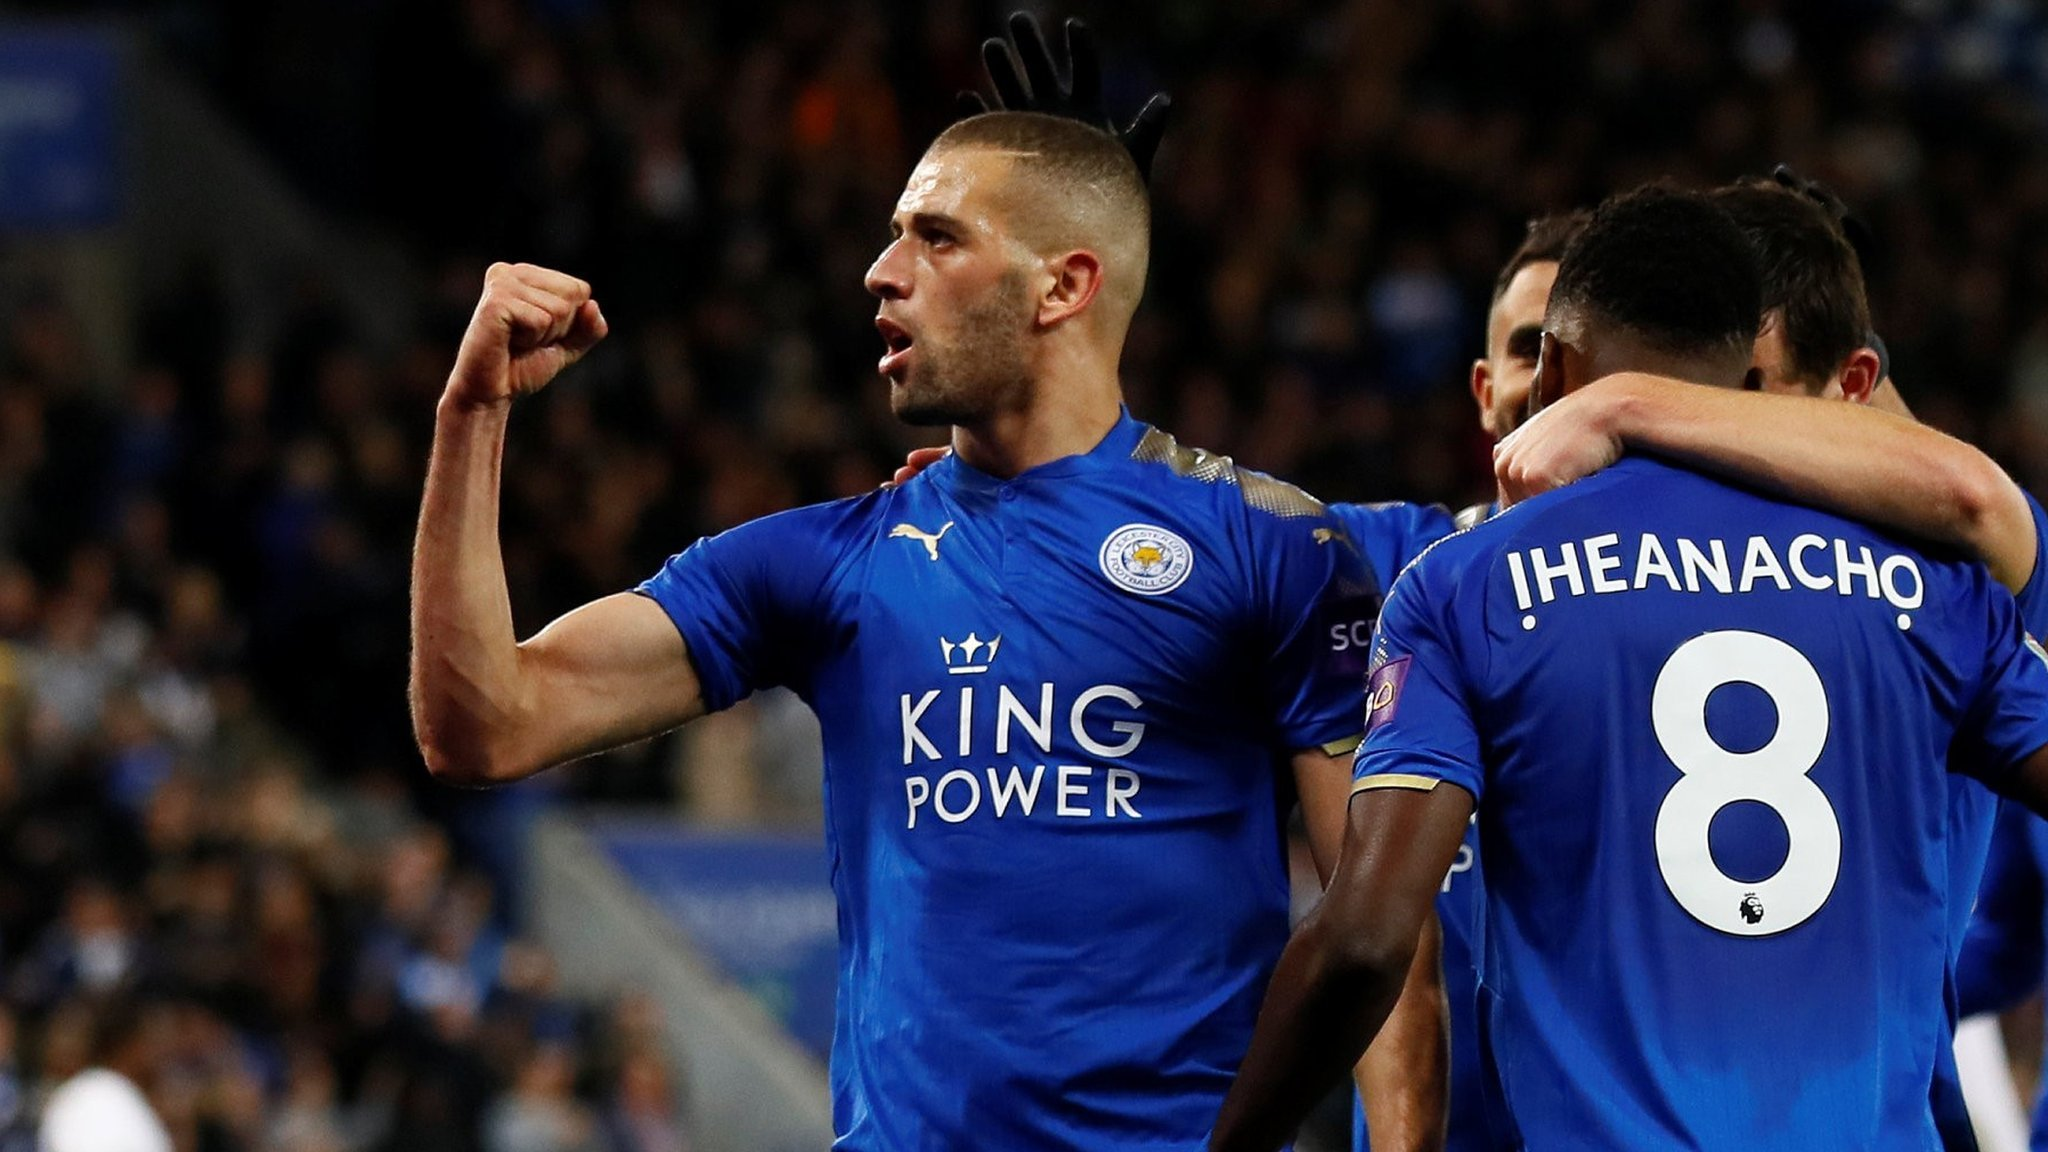 Iheanacho on target as Leicester see off Leeds